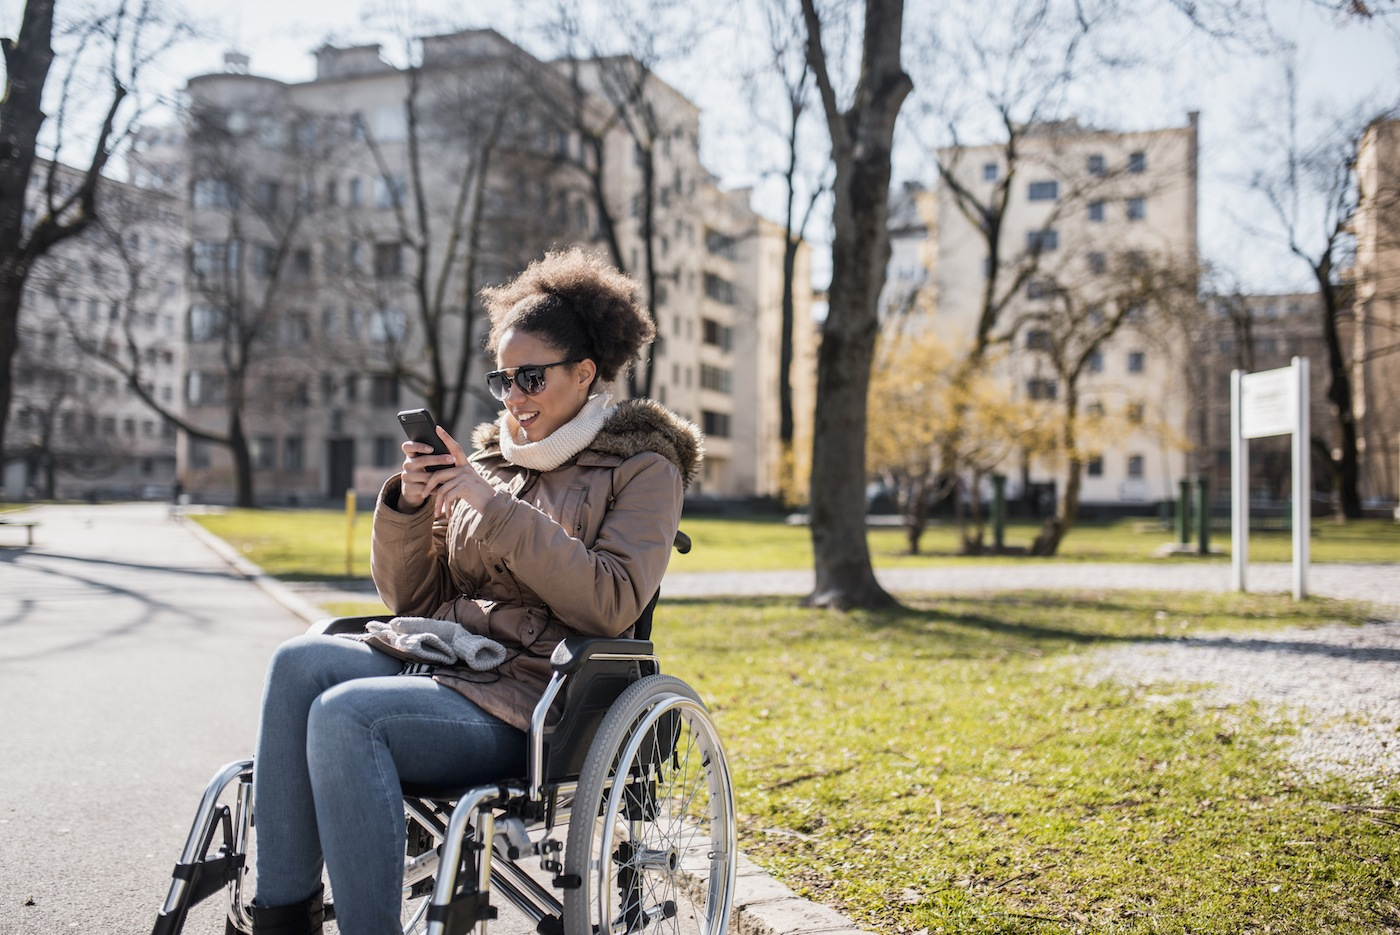 Thumbnail for Smartphones Are Introducing Tech That Makes the World More Accessible for People With Disabilities